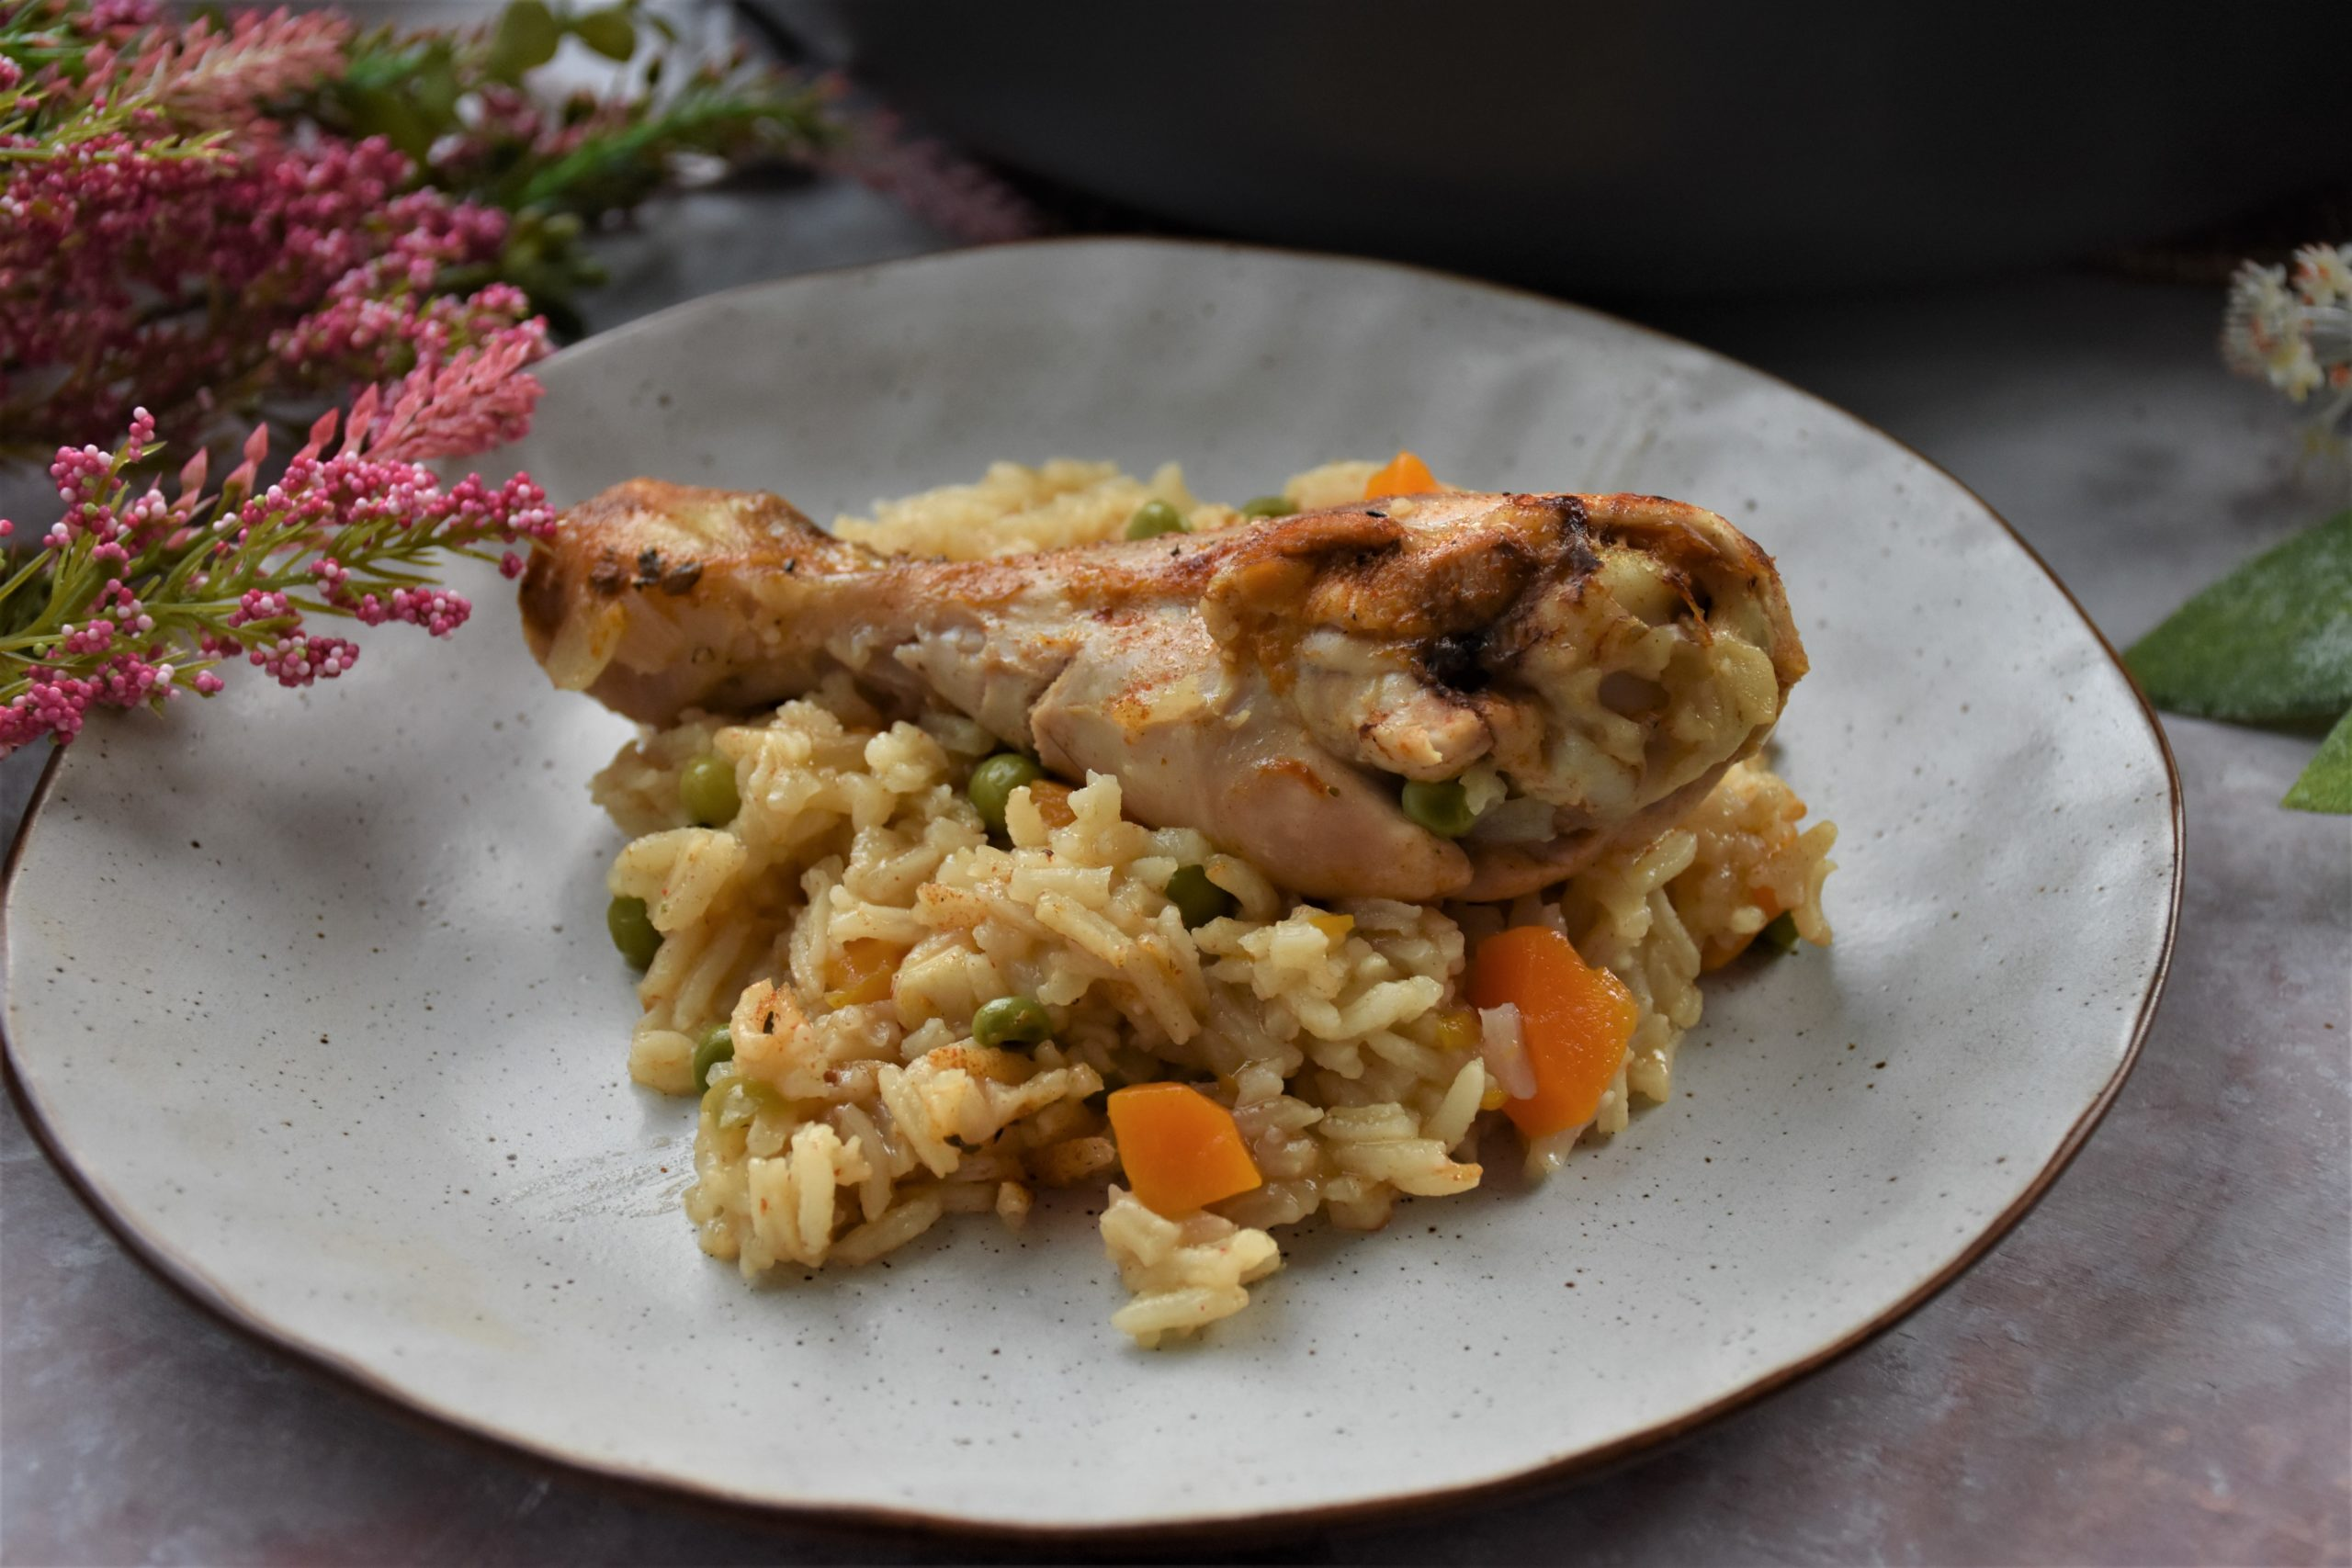 Serbian Rice Pilaf on a plate